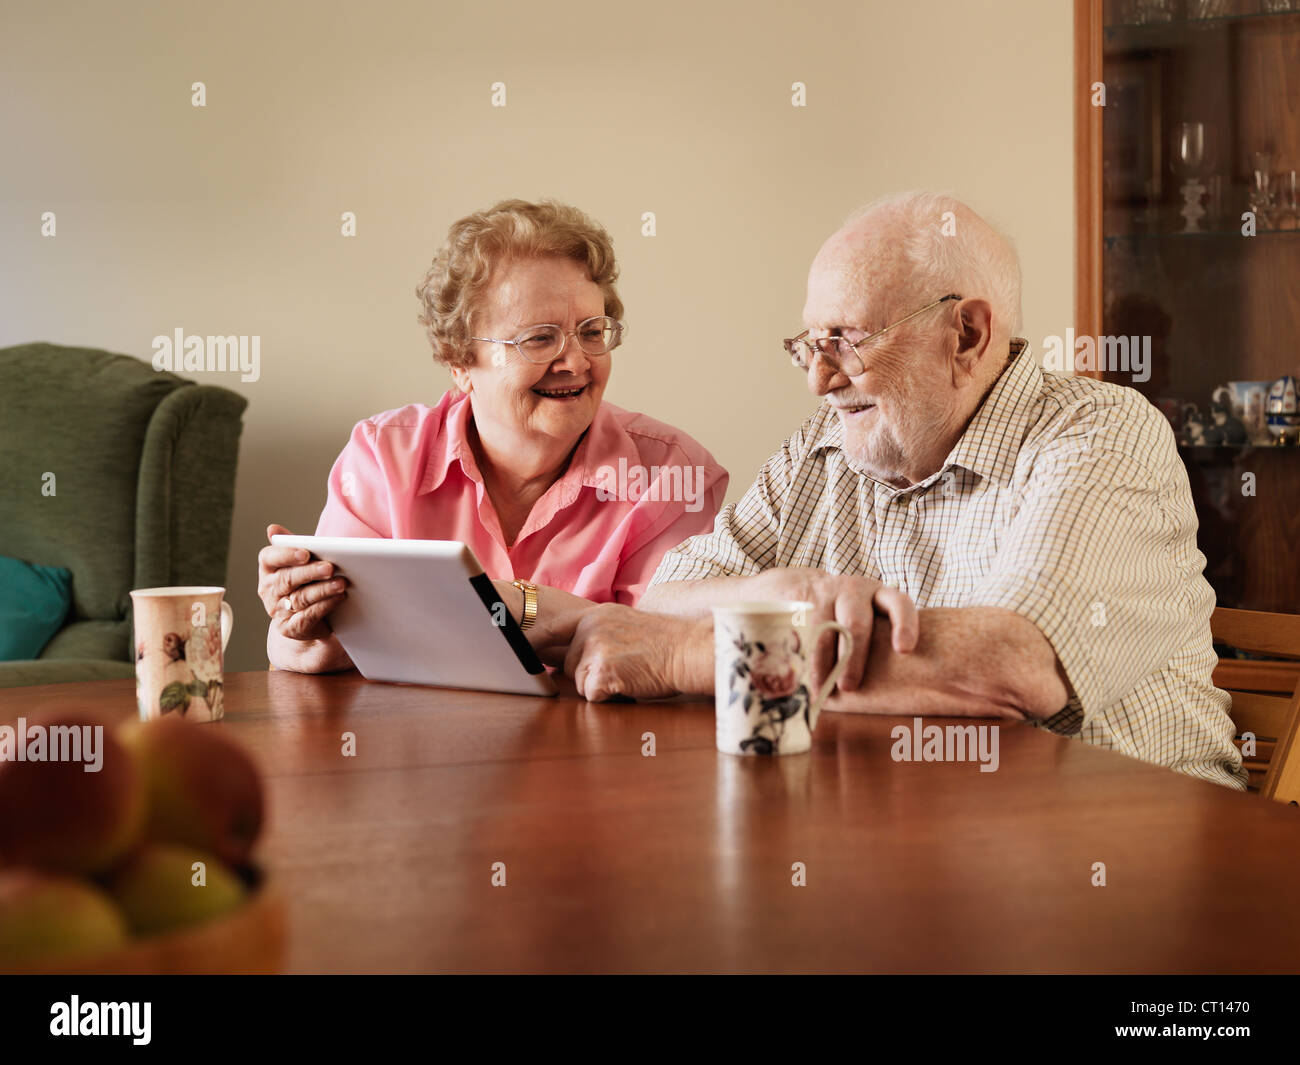 Older couple using tablet computer Stock Photo